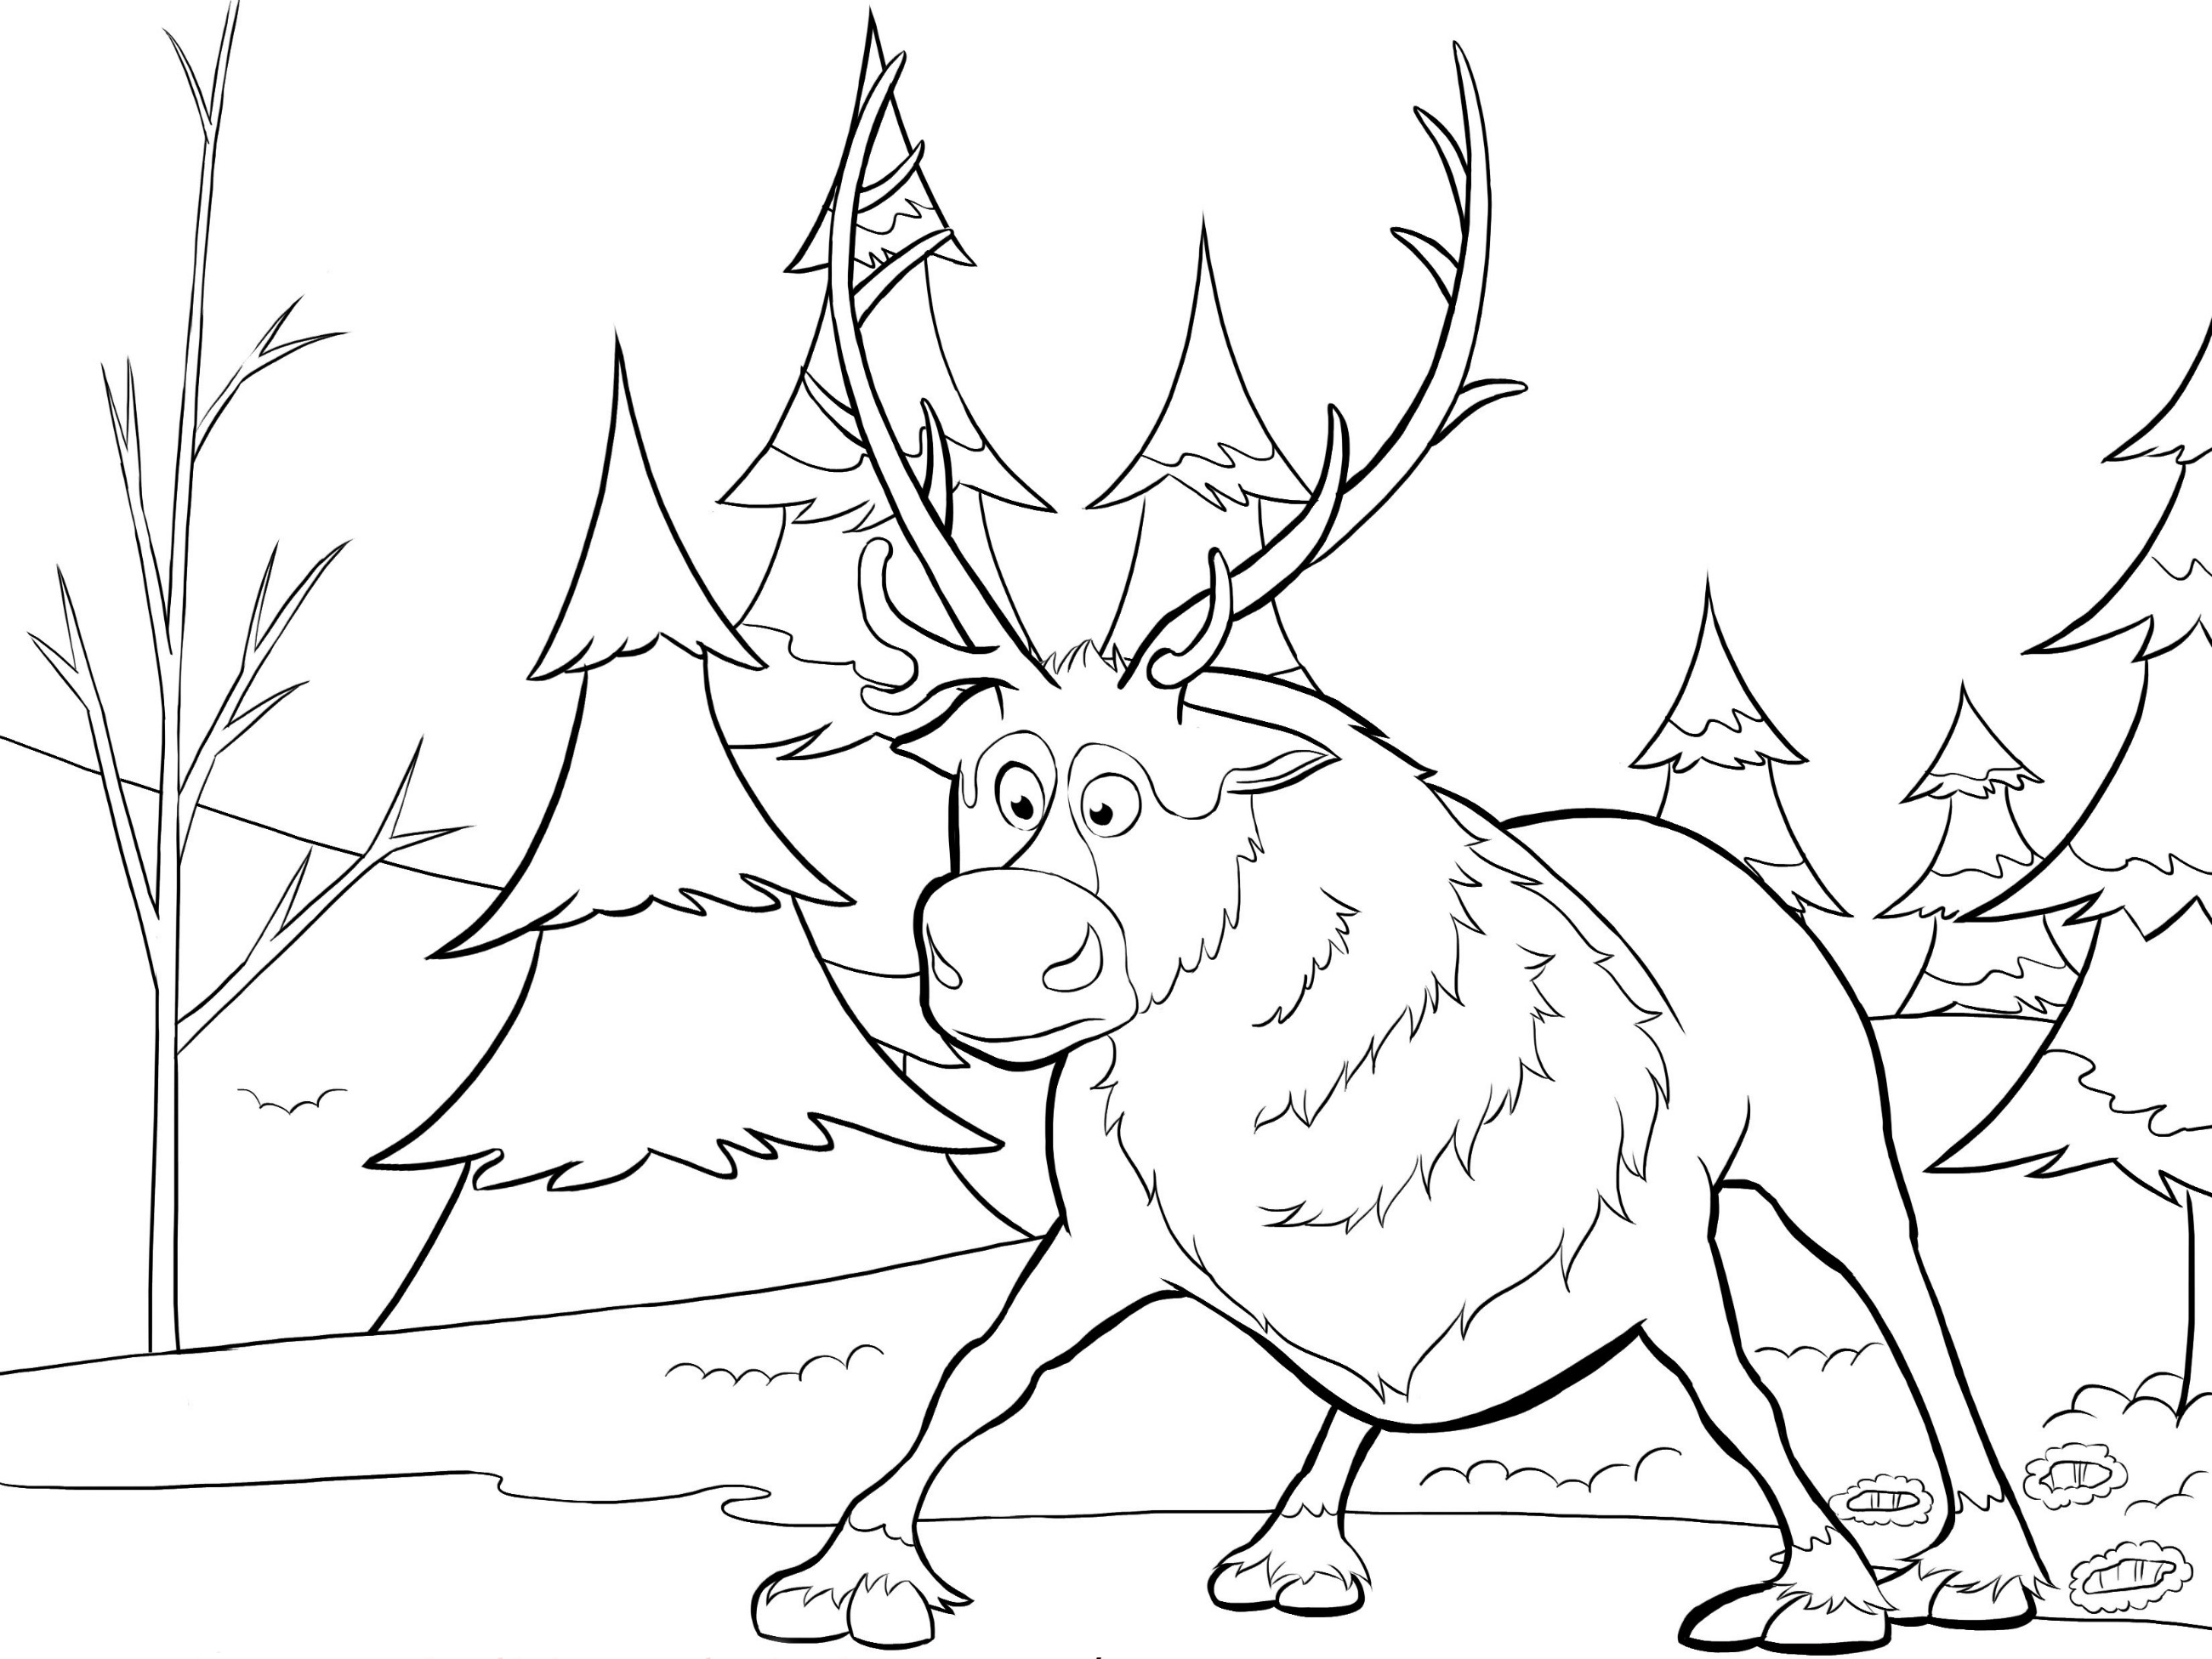 frozen free online coloring pages - photo#17